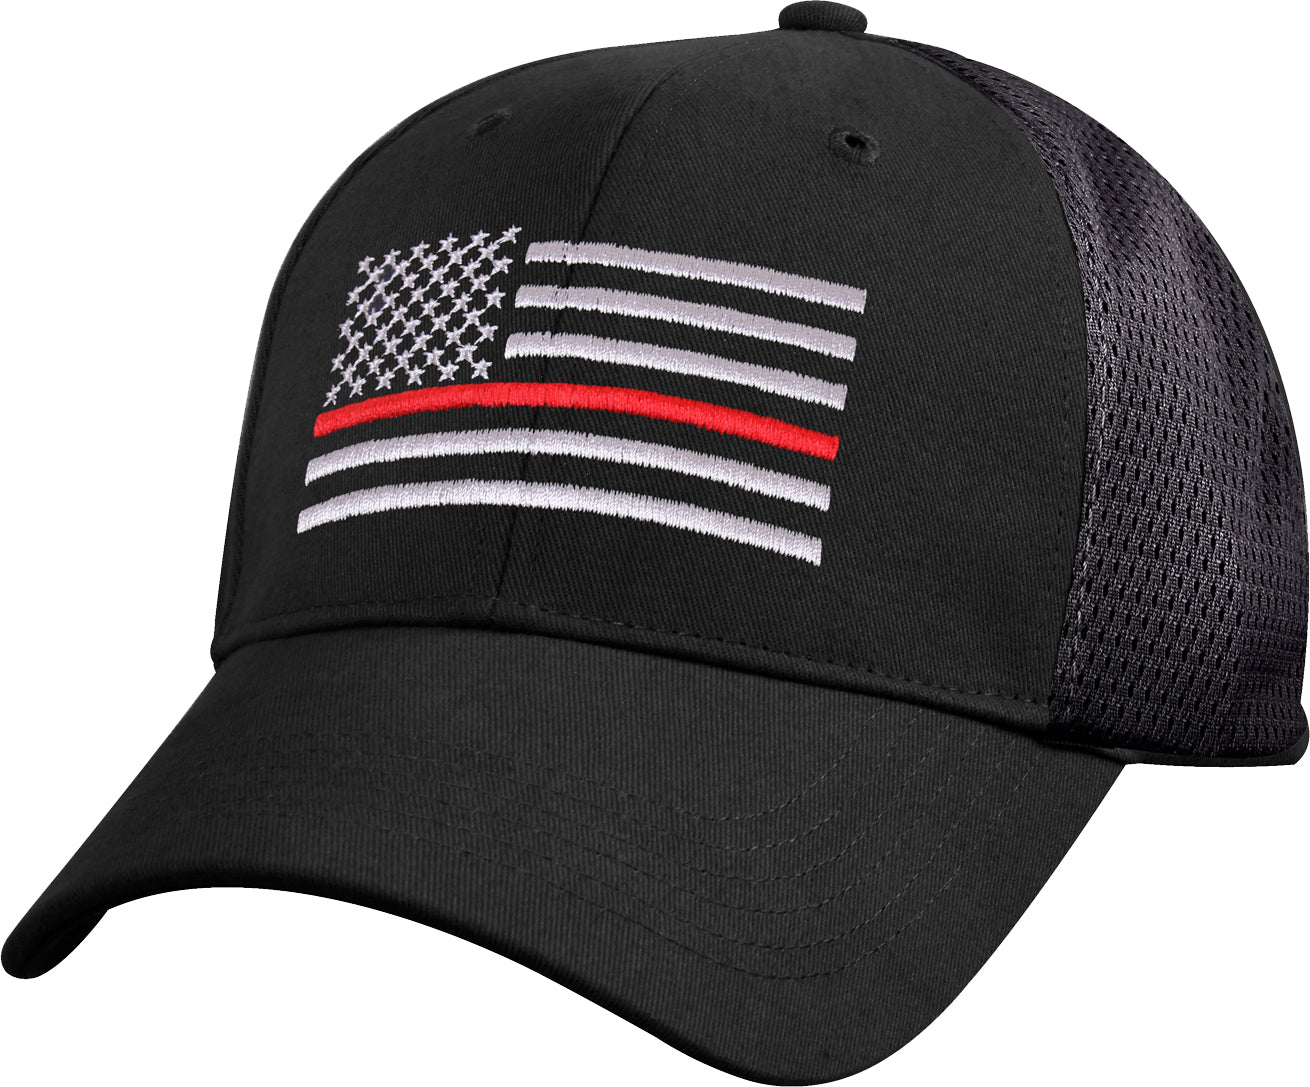 Black - Thin Red Line Mesh Back Tactical Cap